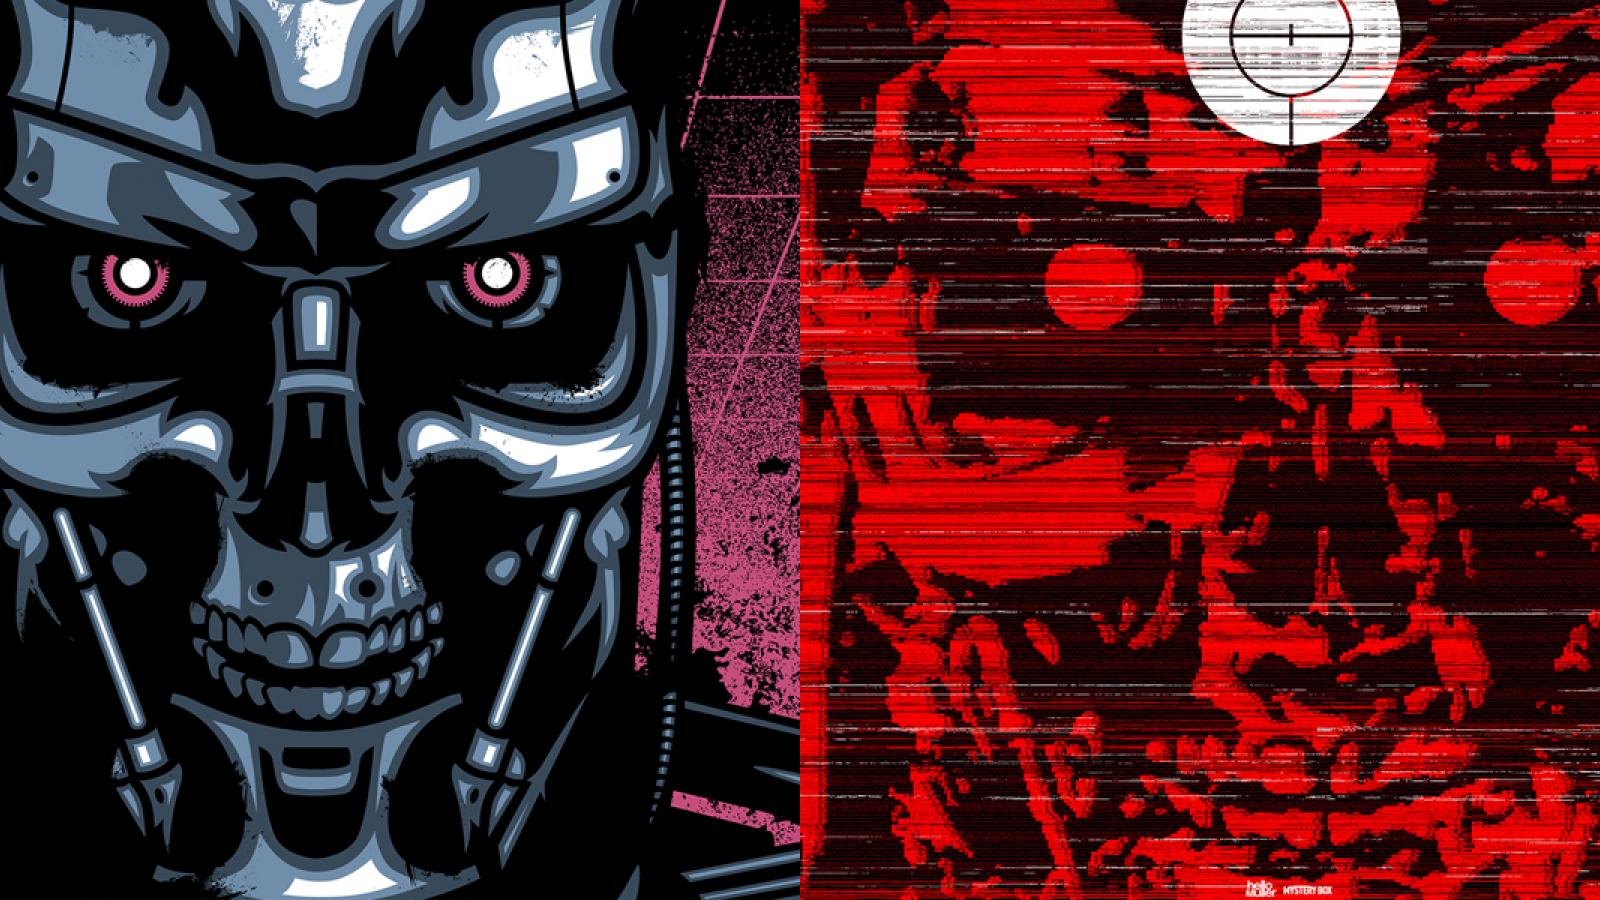 Terminator 2 Posters Launch by Signalnoise and helloMuller